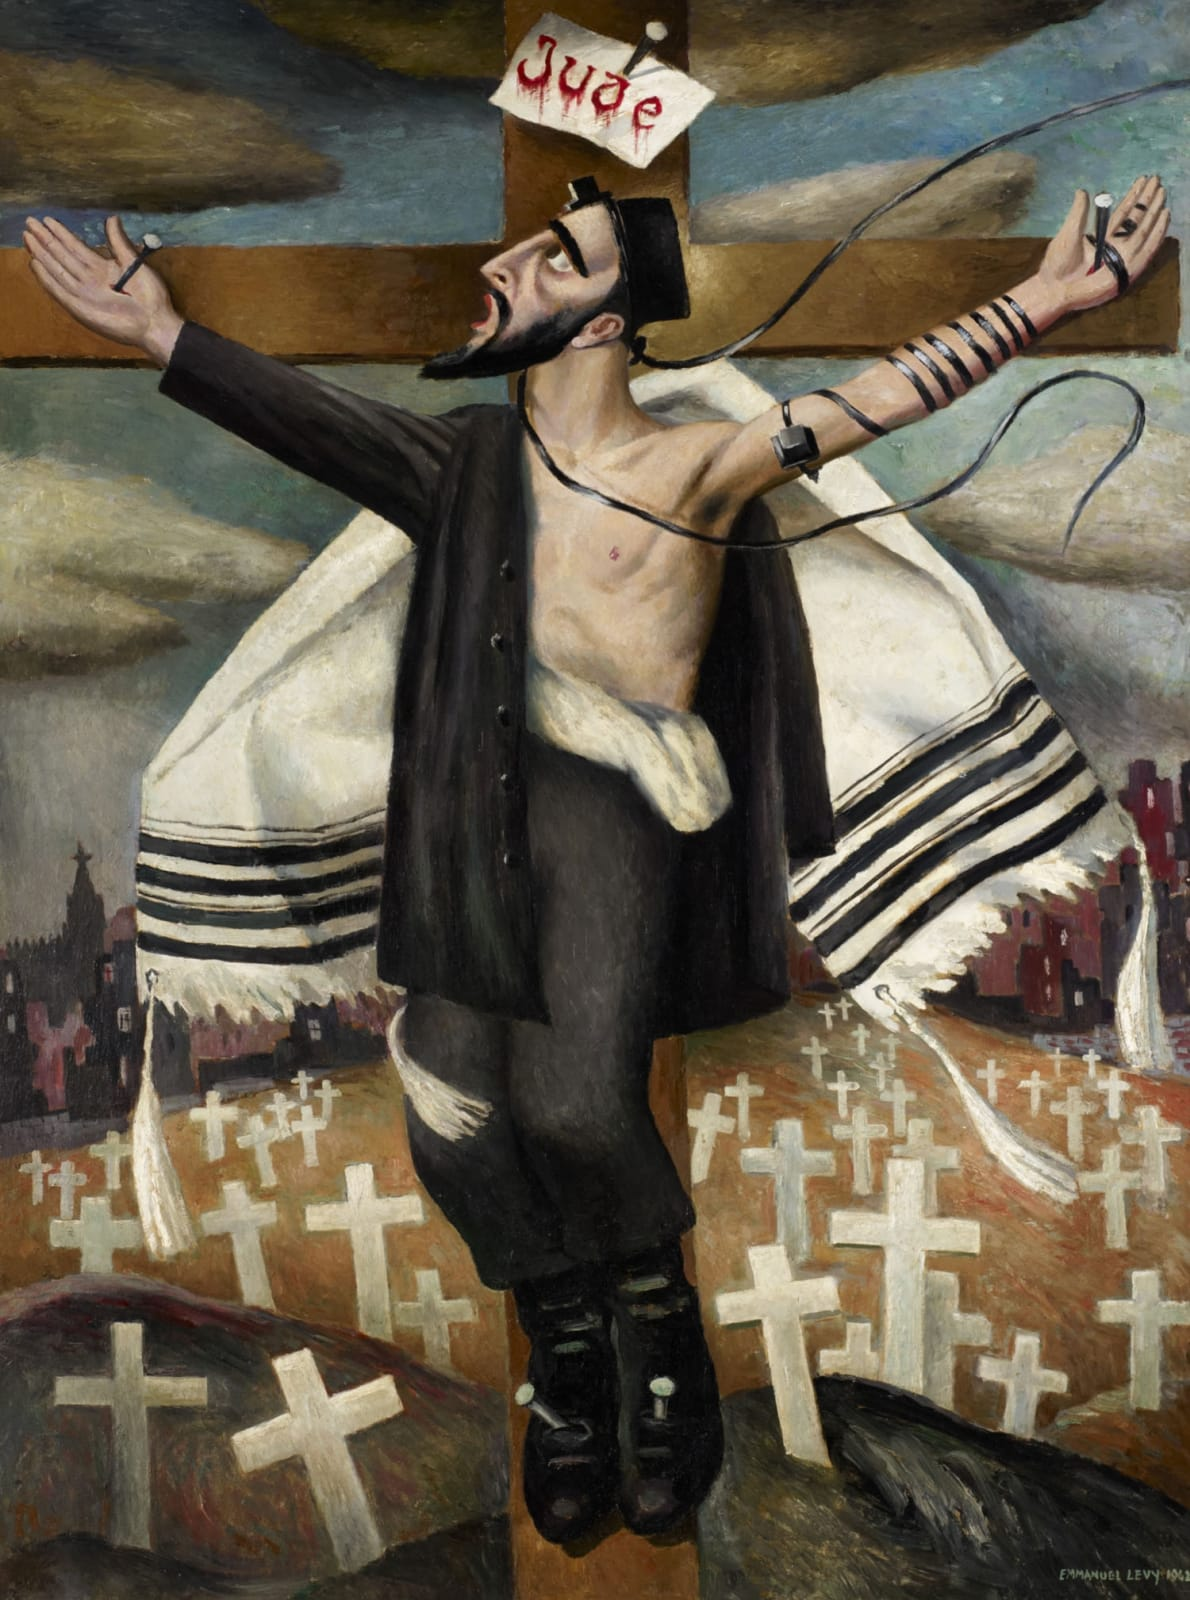 The image of the Crucifixion seen thourgh Emmanuel Levy Discover the unexpected image of the crucifixion and it's role in Jewish Art. Listen as Ben Uri curators guide you through this bold painting by famous Jewish Artist Emmanual Levy. Part of the audio guide produced for Ben Uri gallery 2015 Centenary. Listen